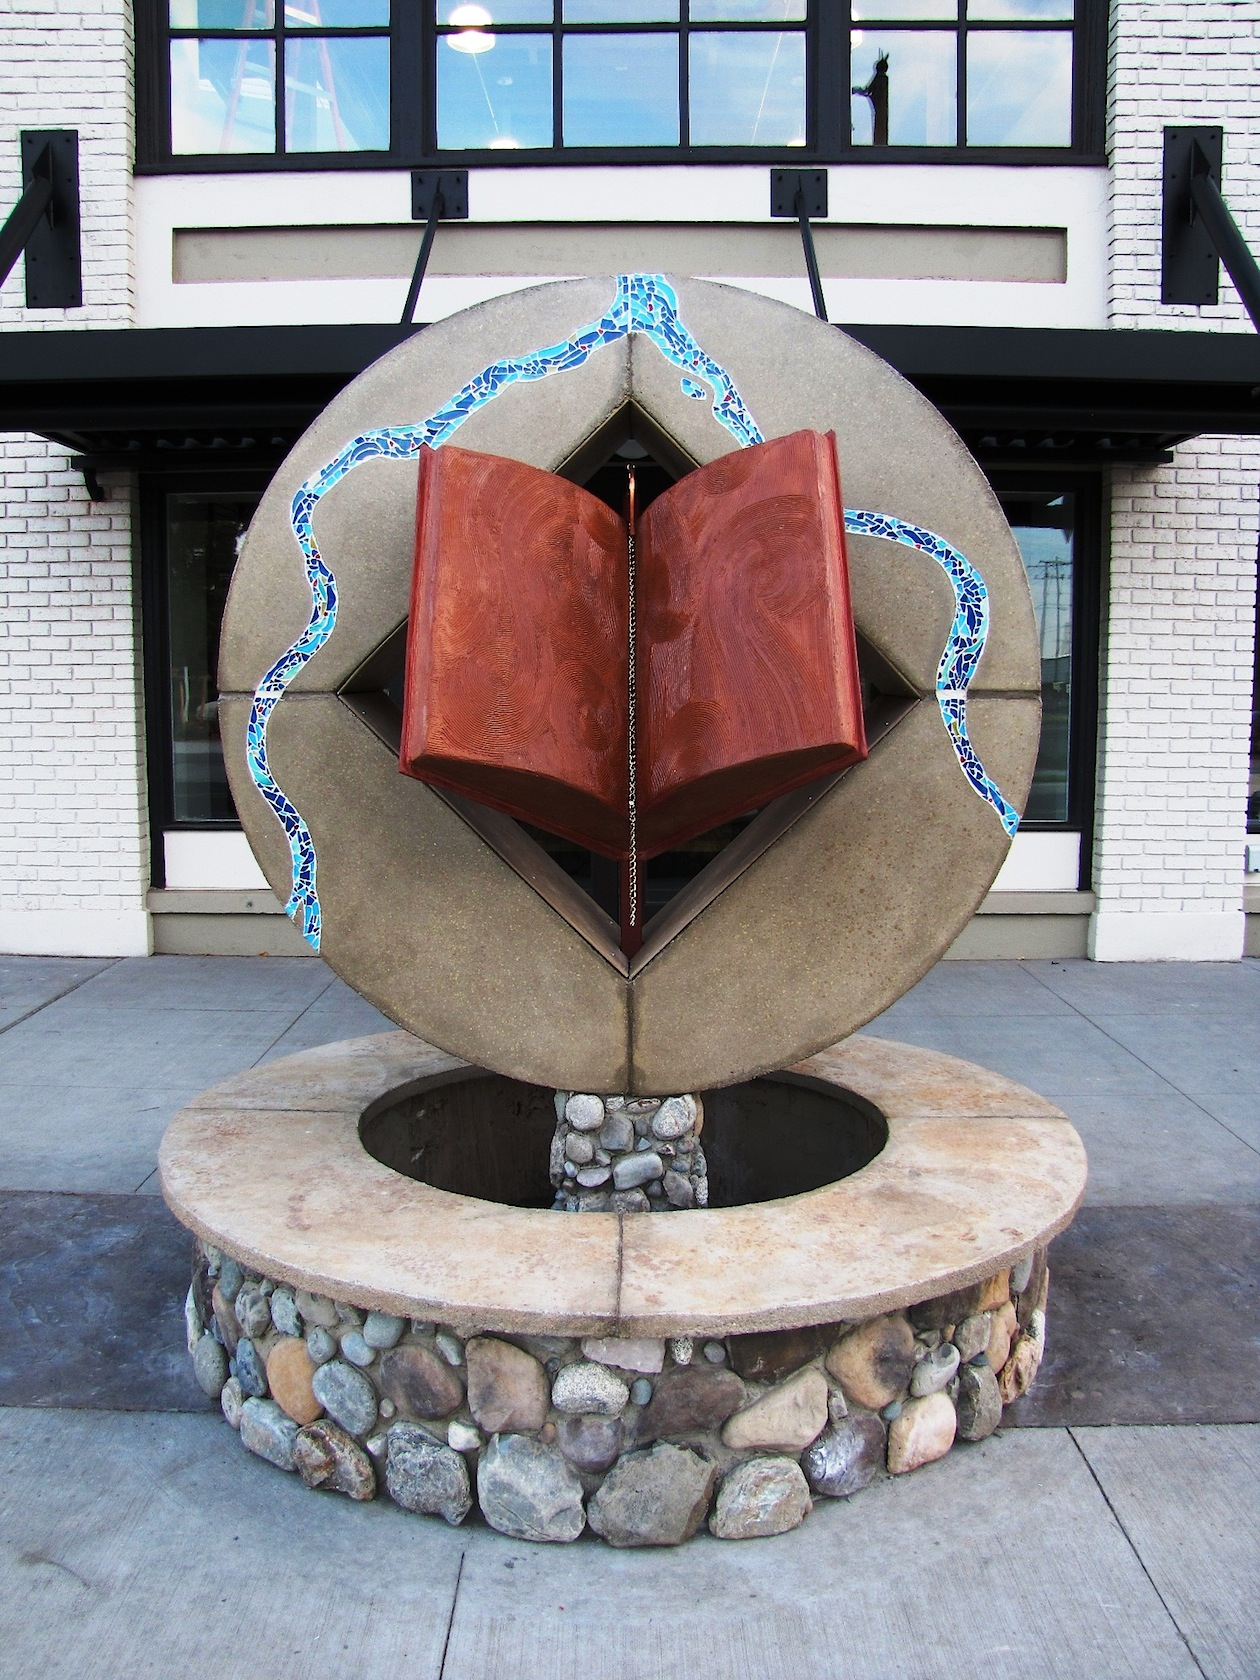 Lewiston Public Library Fountain